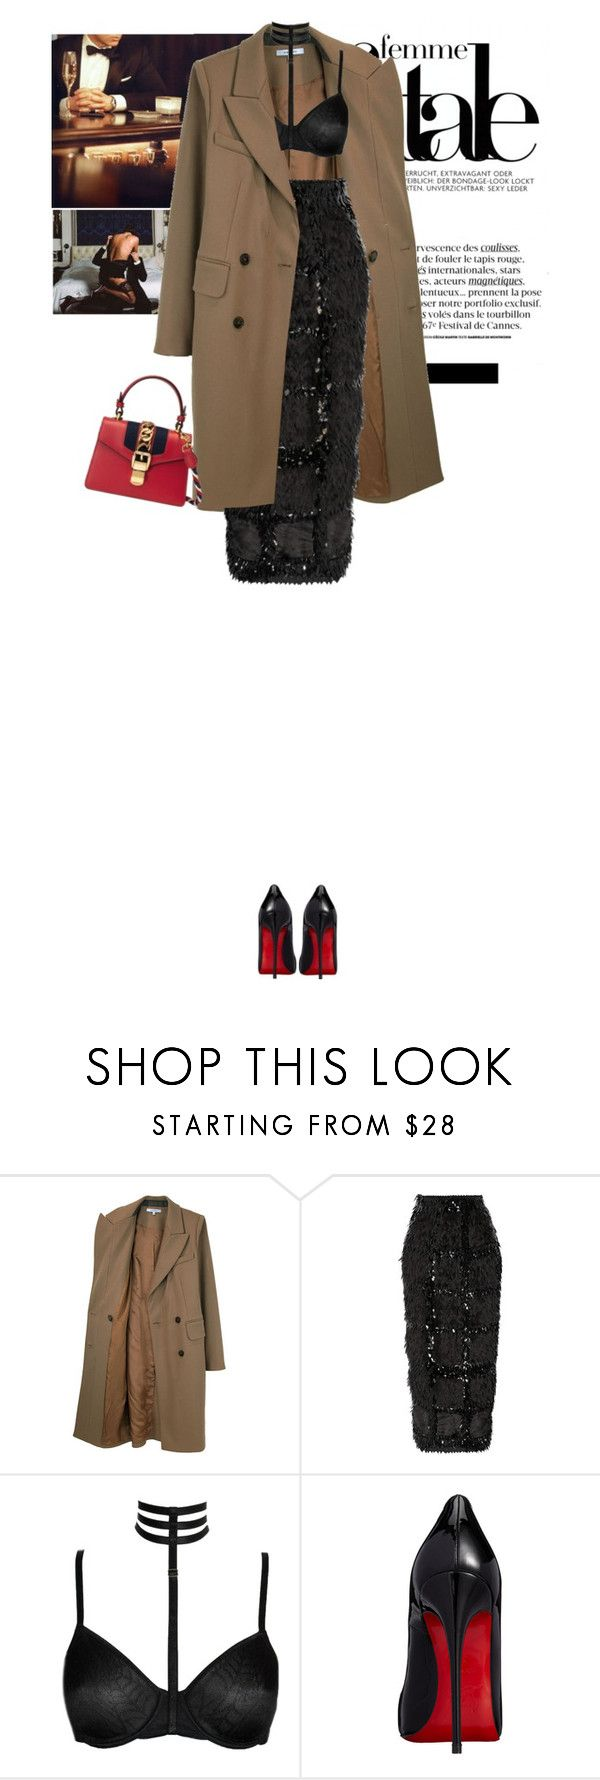 """""""Baby, don't understand why we can't just hold on to each other's hands, this time might be the last I fear, unless I make it all too clear, I need you so. Take these broken wings and learn to fly again."""" by vicky-carter ❤ liked on Polyvore featuring Carven, Roksanda, Christian Louboutin, Gucci, black, Louboutin and gucci"""